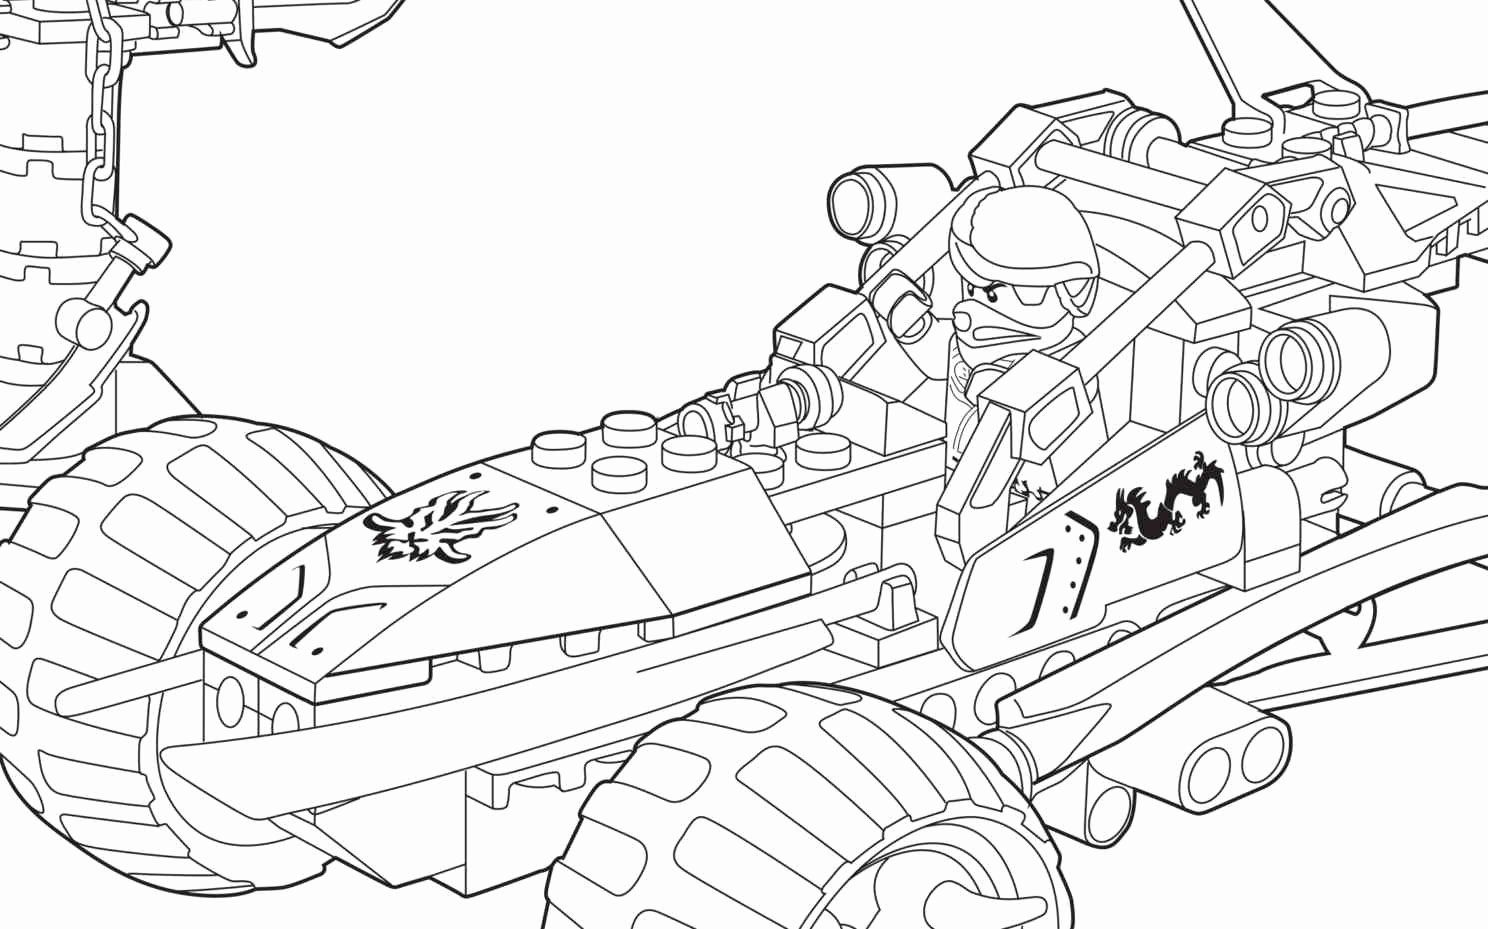 28 Kai Ninjago Coloring Page in 2020 (With images